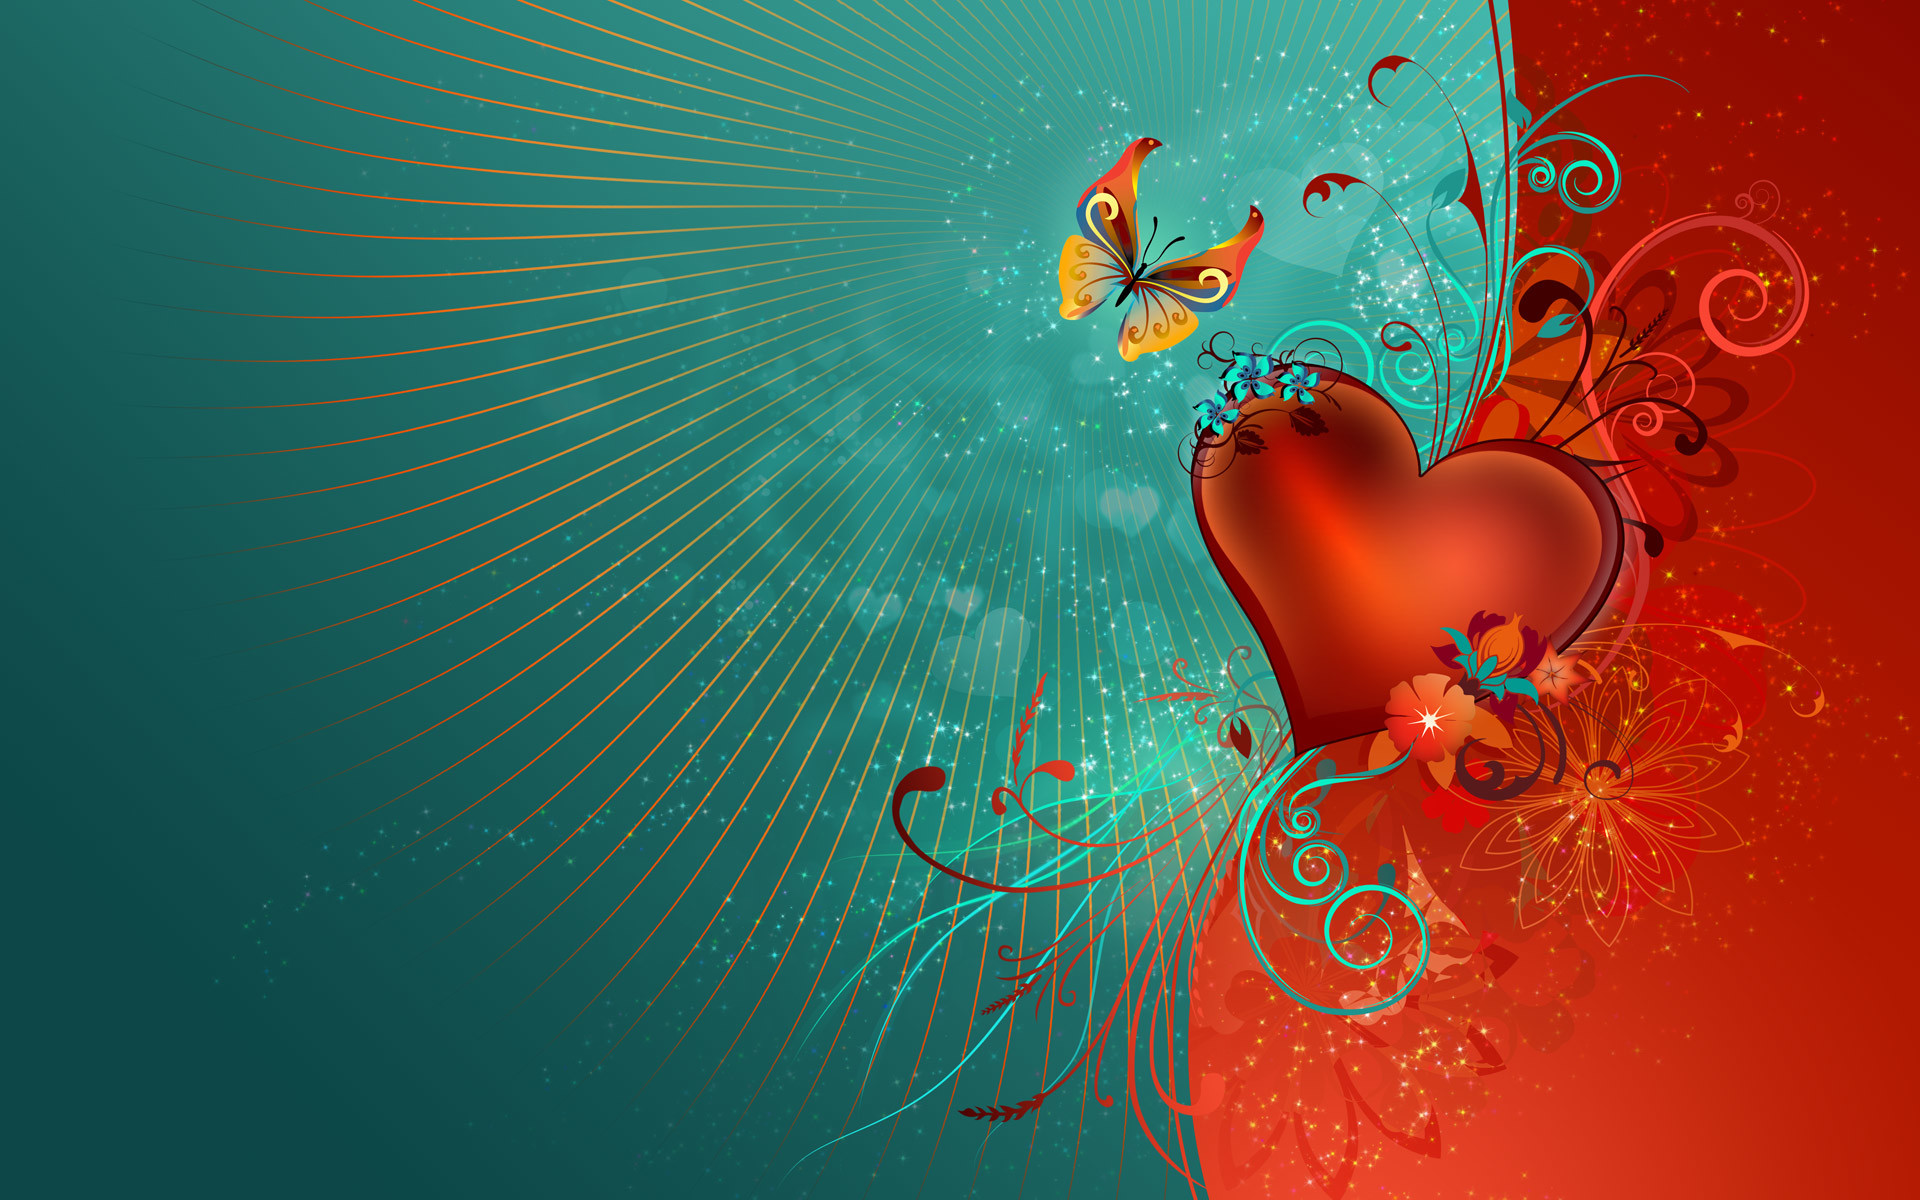 1920x1200 Love Heart HDTV 1080p Wallpapers | HD Wallpapers